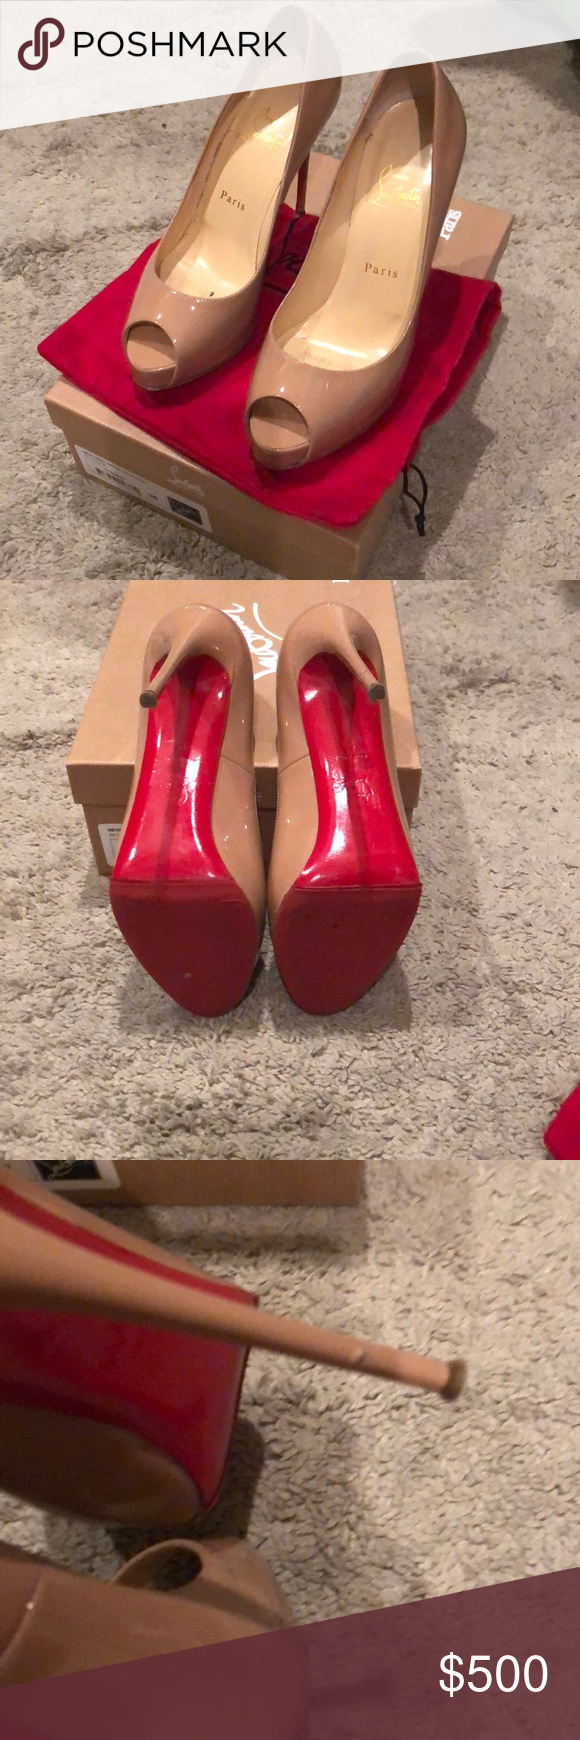 the latest 4c362 49ac4 Louboutin New Very Prive 120 patent PK1A nude pump Pink nude ...